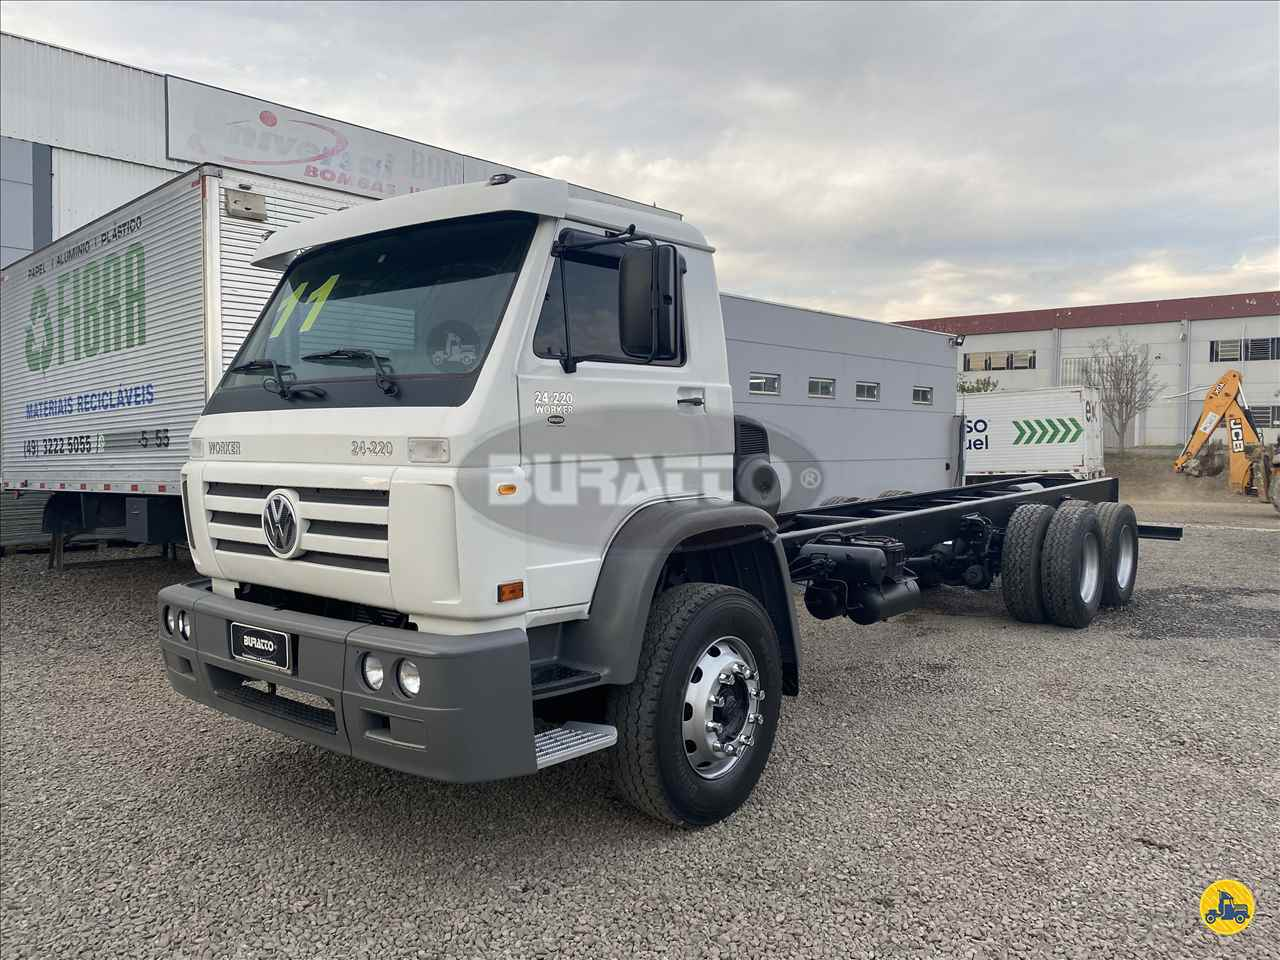 CAMINHAO VOLKSWAGEN VW 24220 Chassis Truck 6x2 Buratto Caminhões LAGES SANTA CATARINA SC